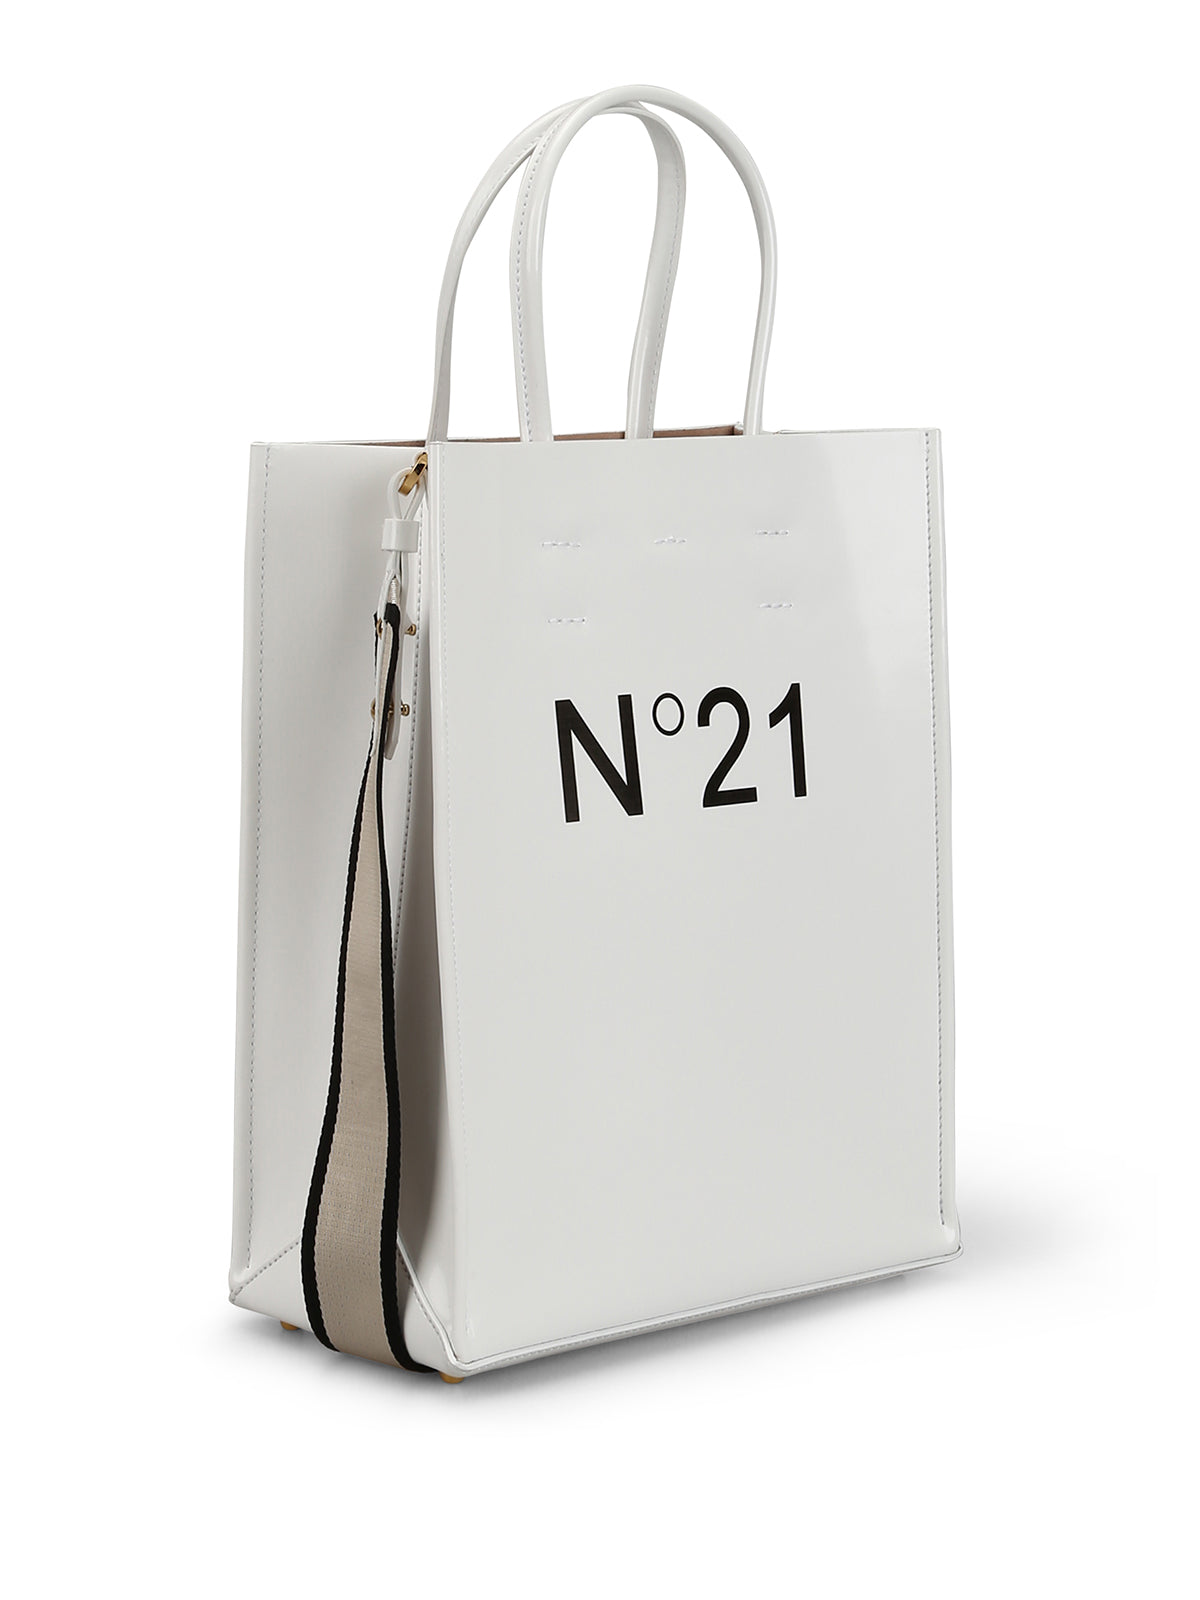 N21 Silver Shopping Bag / Logo Tote Small in White